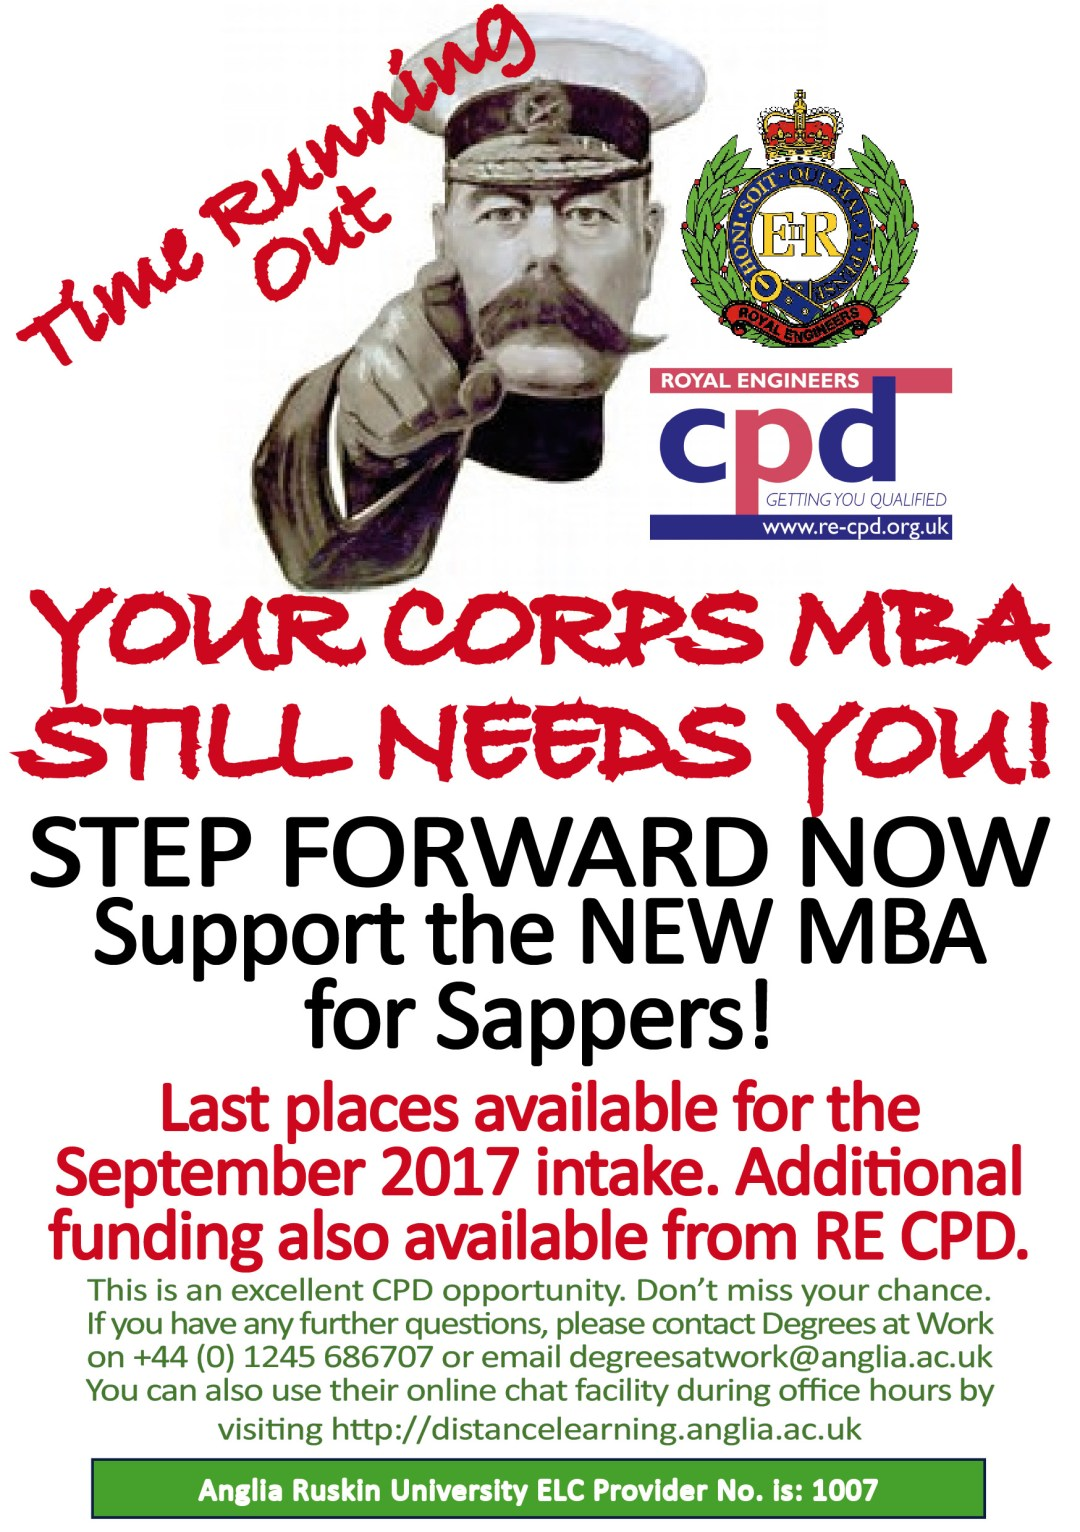 Your Corps MBA Still Needs YOU!